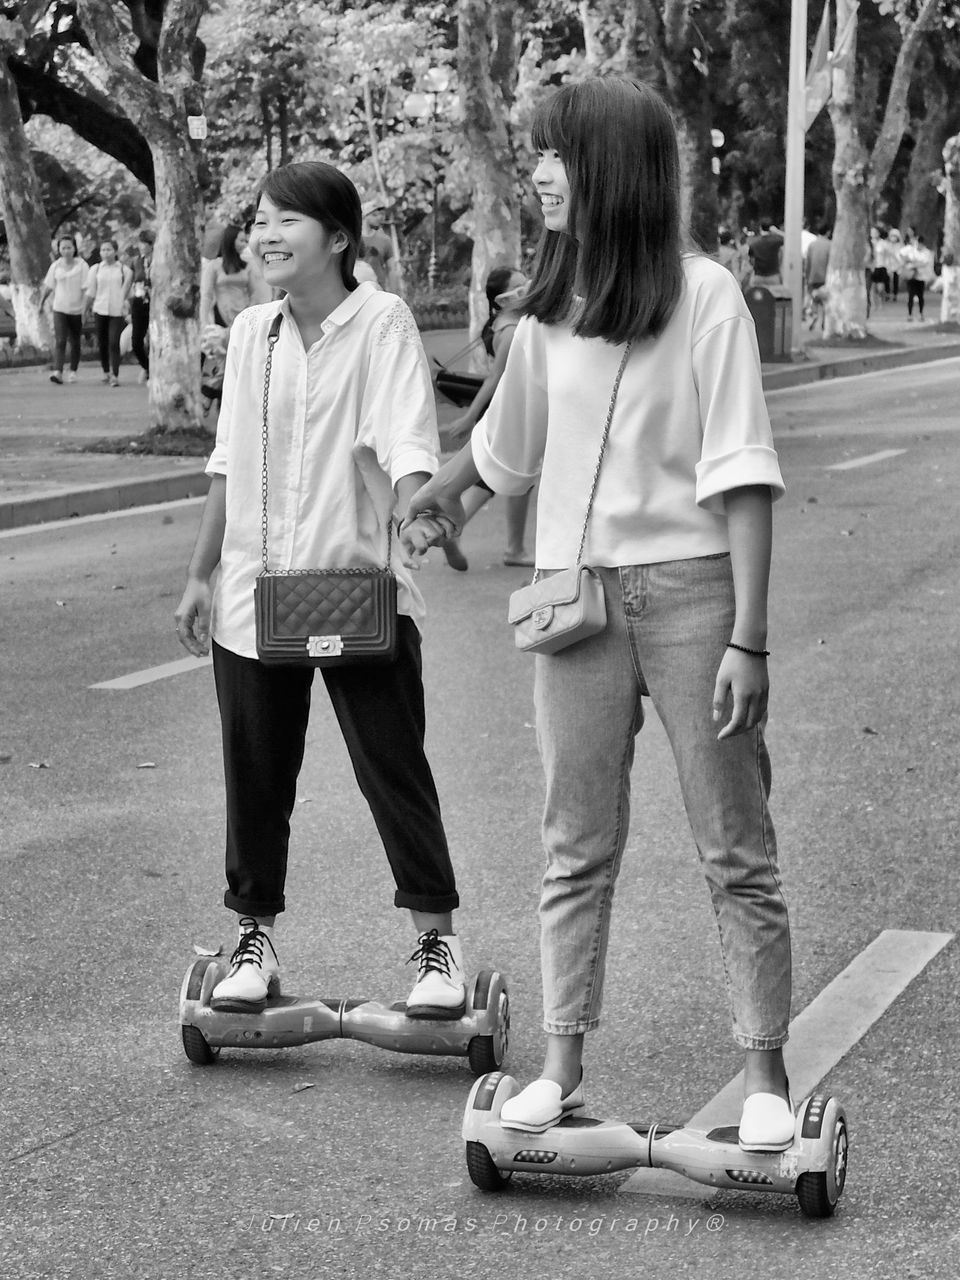 full length, leisure activity, casual clothing, real people, standing, two people, lifestyles, skateboard, girls, togetherness, outdoors, day, childhood, playing, fun, boys, happiness, tree, smiling, friendship, young adult, people